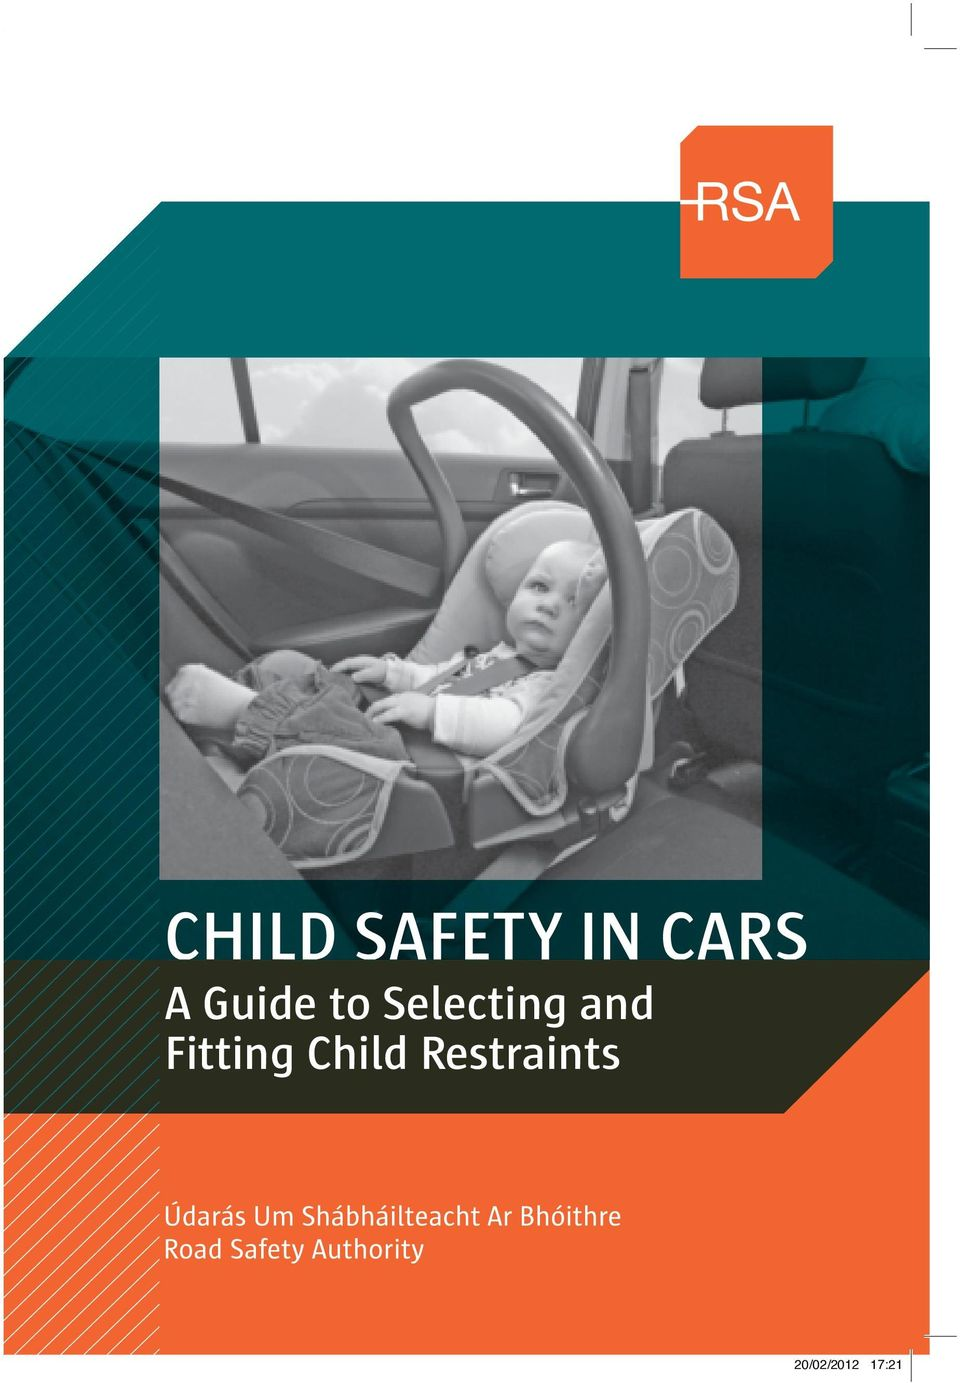 Fitting Child Restraints